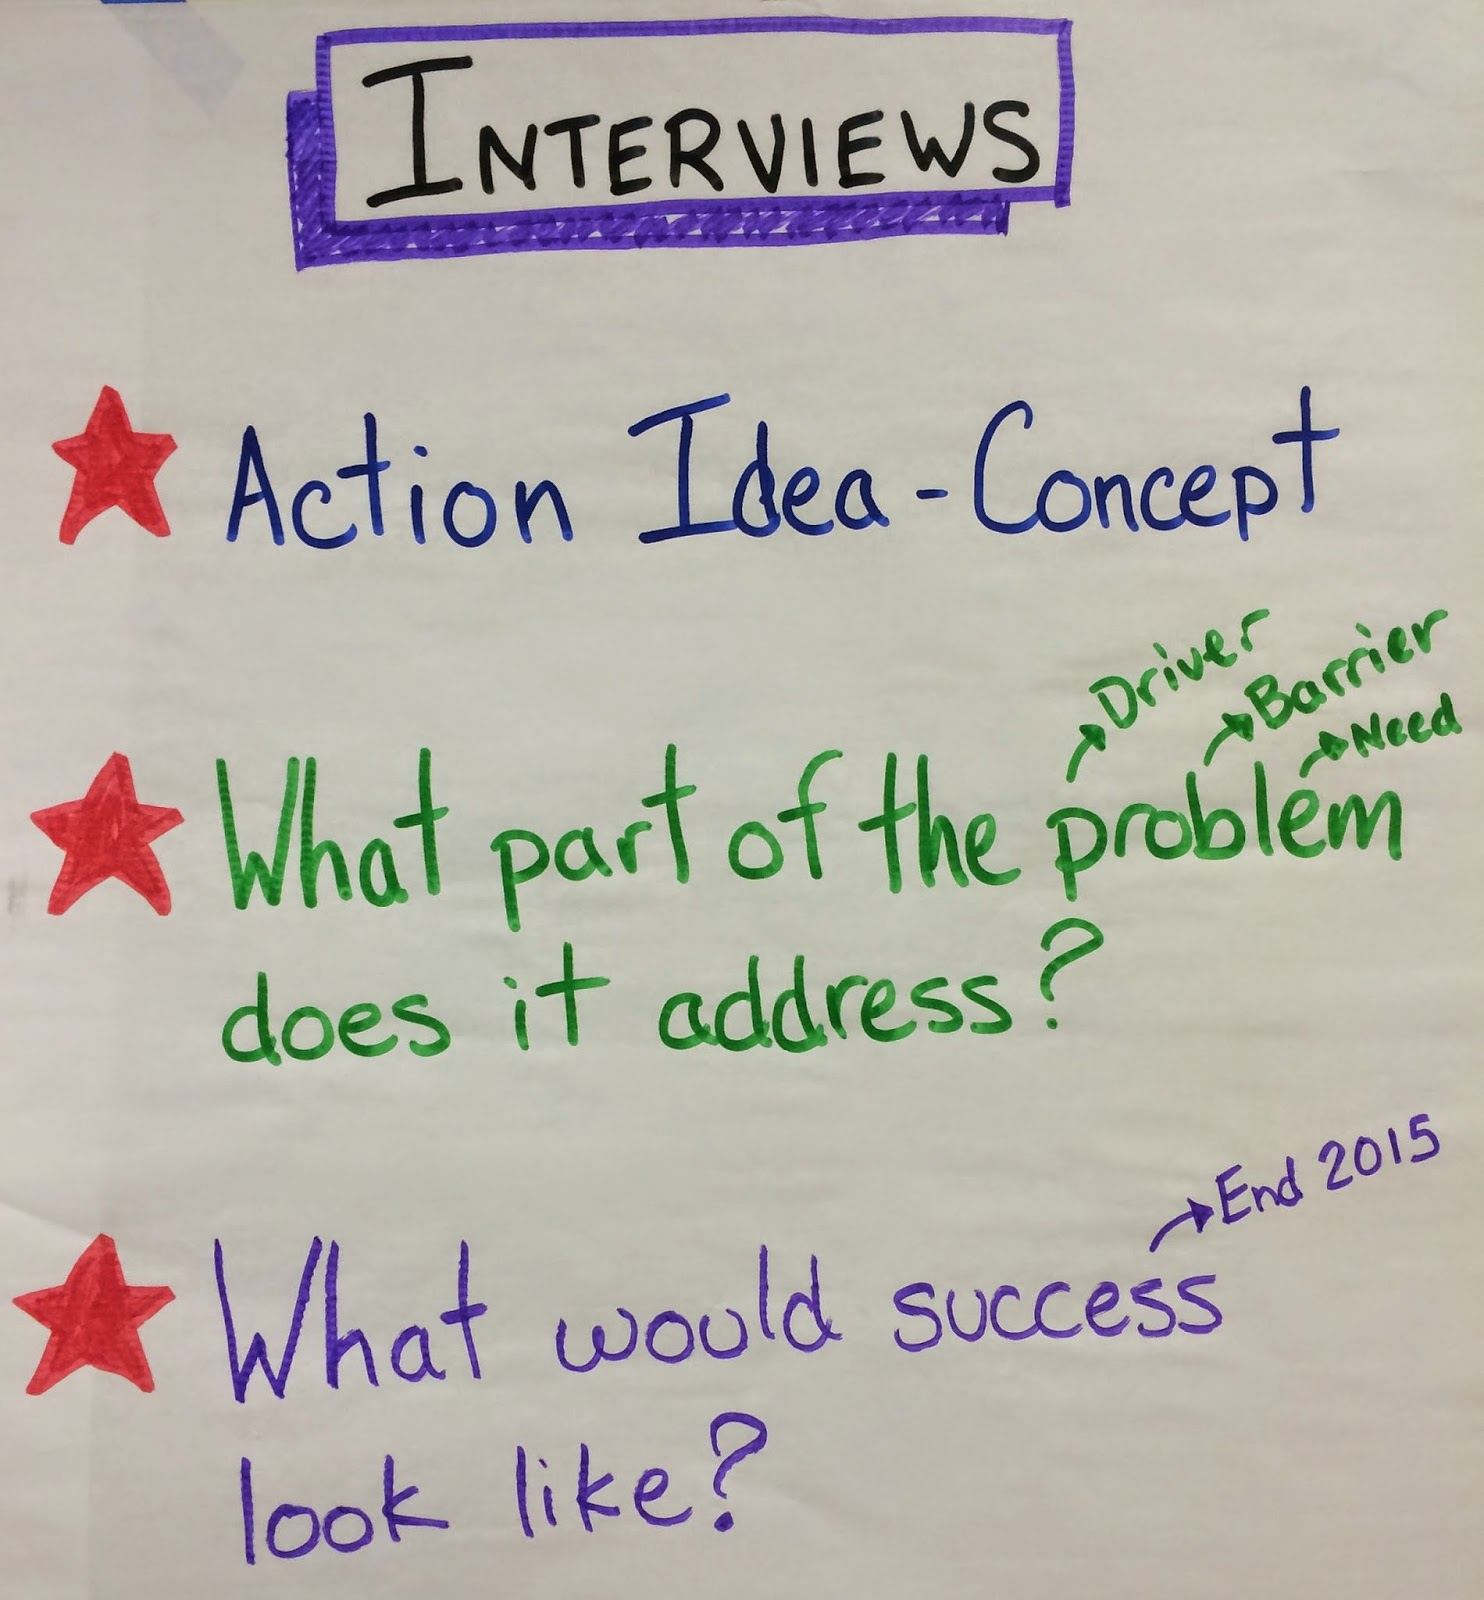 Second Workgroup - Action Idea Brainstorm Interview Directions